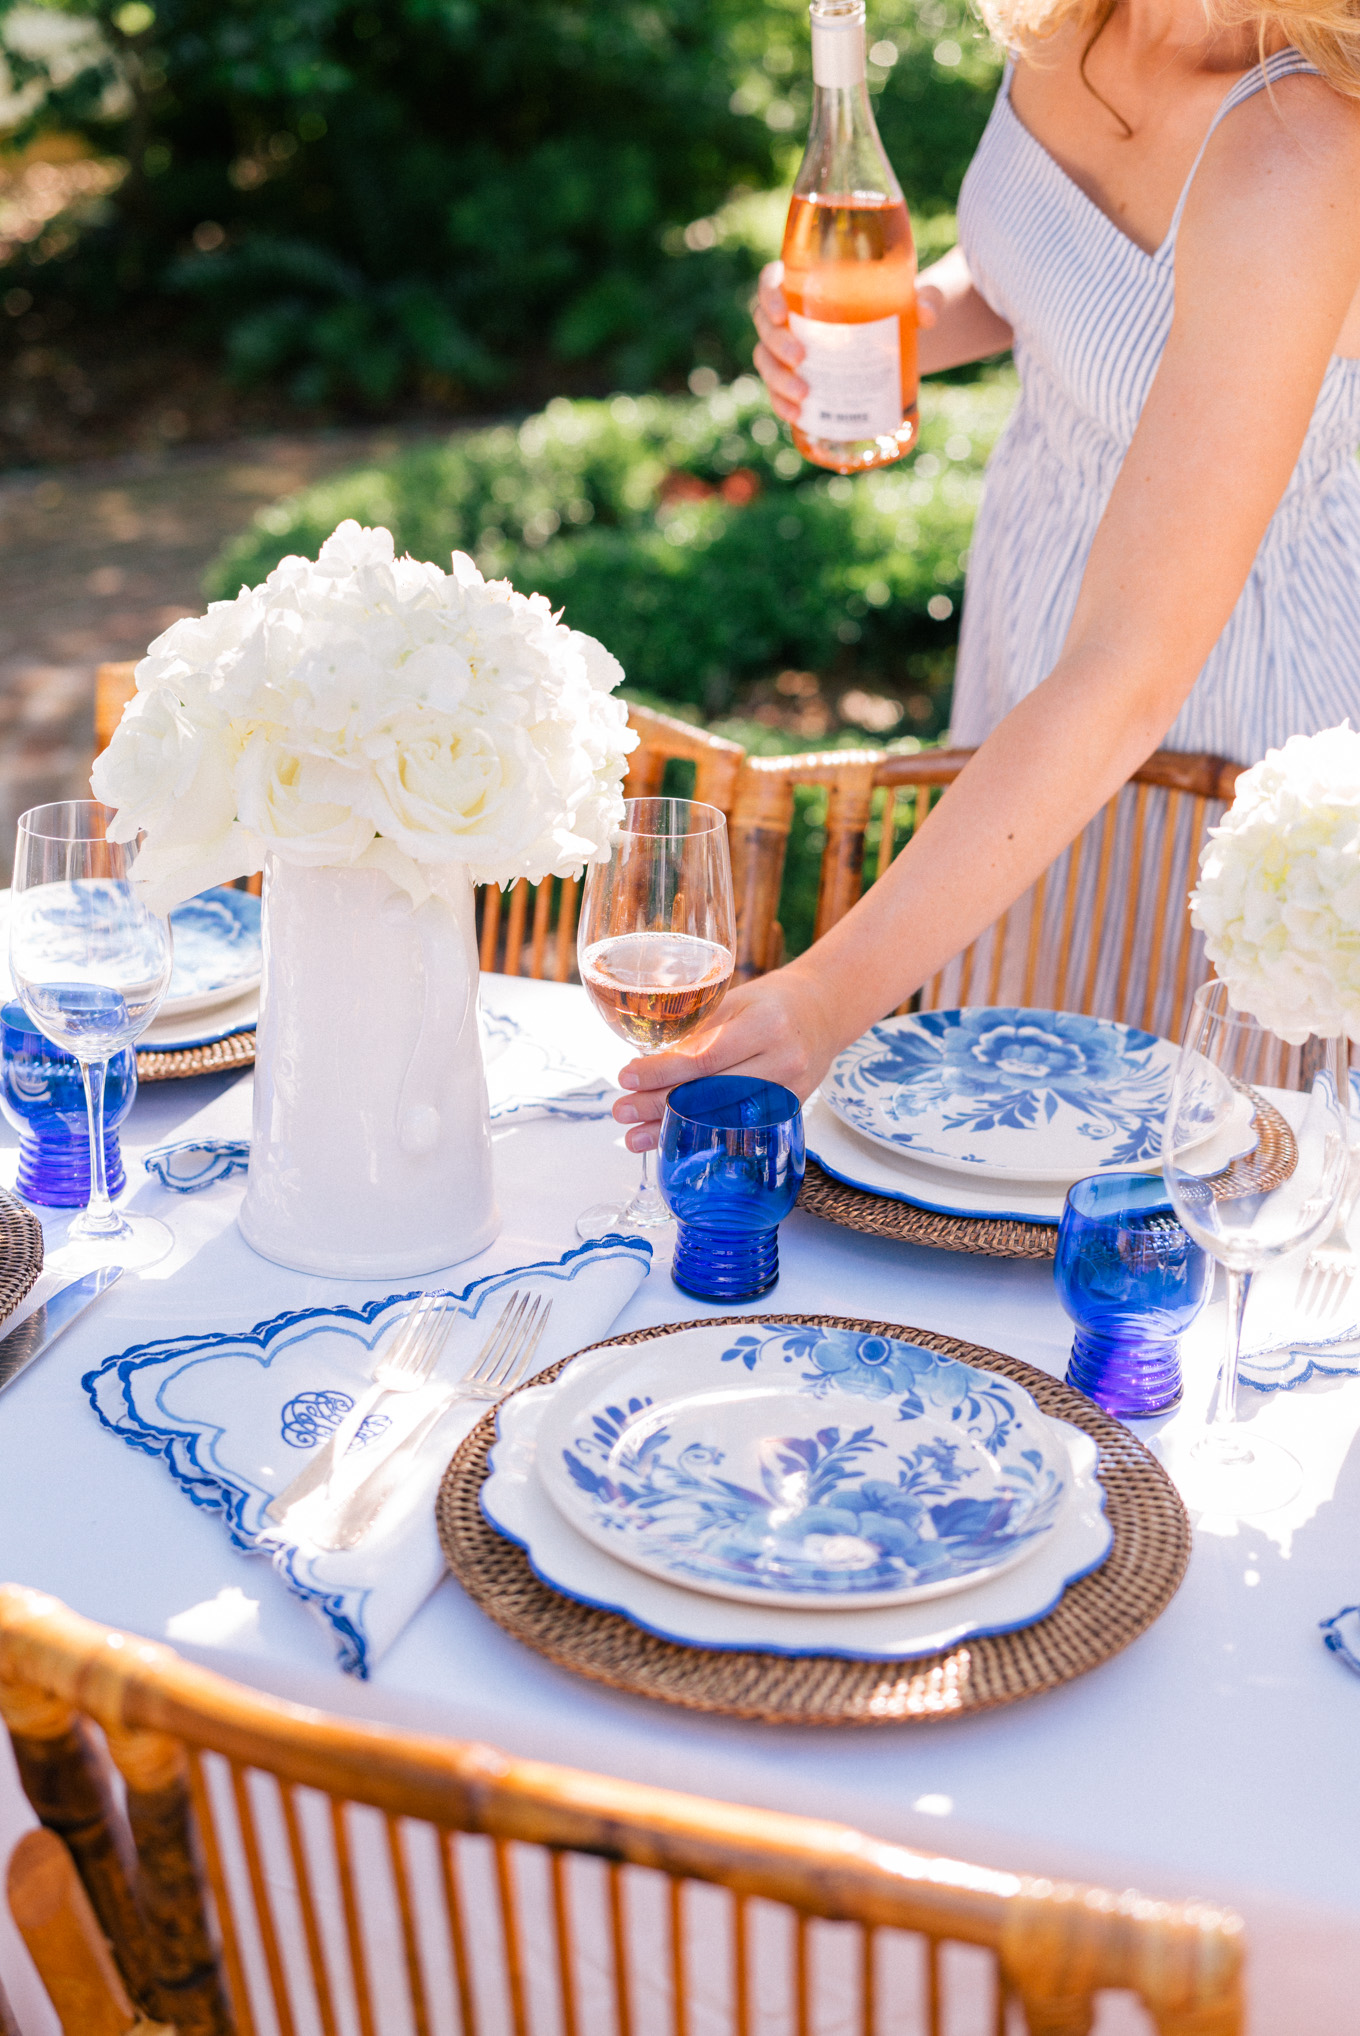 gmg-fourth-of-july-table-1009774